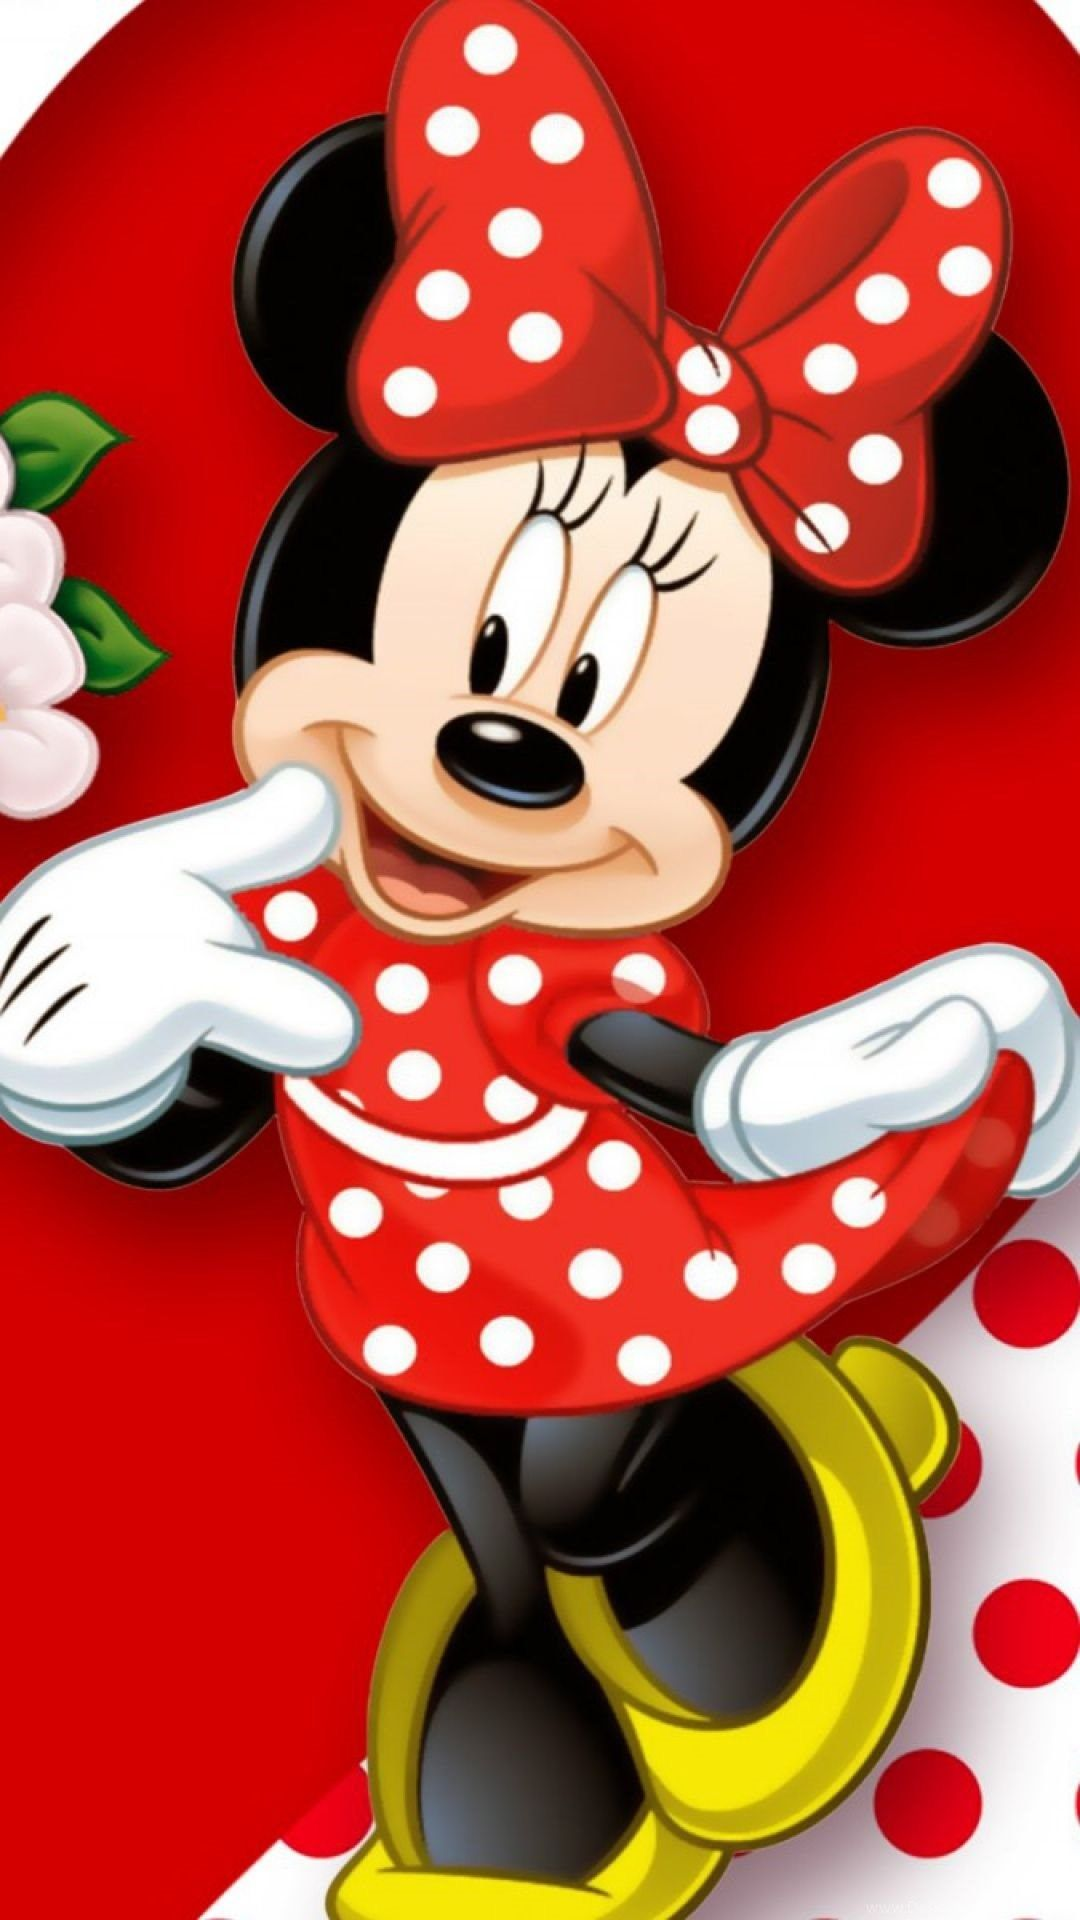 Android Phone Wallpaper Mickey Mouse Images (With images